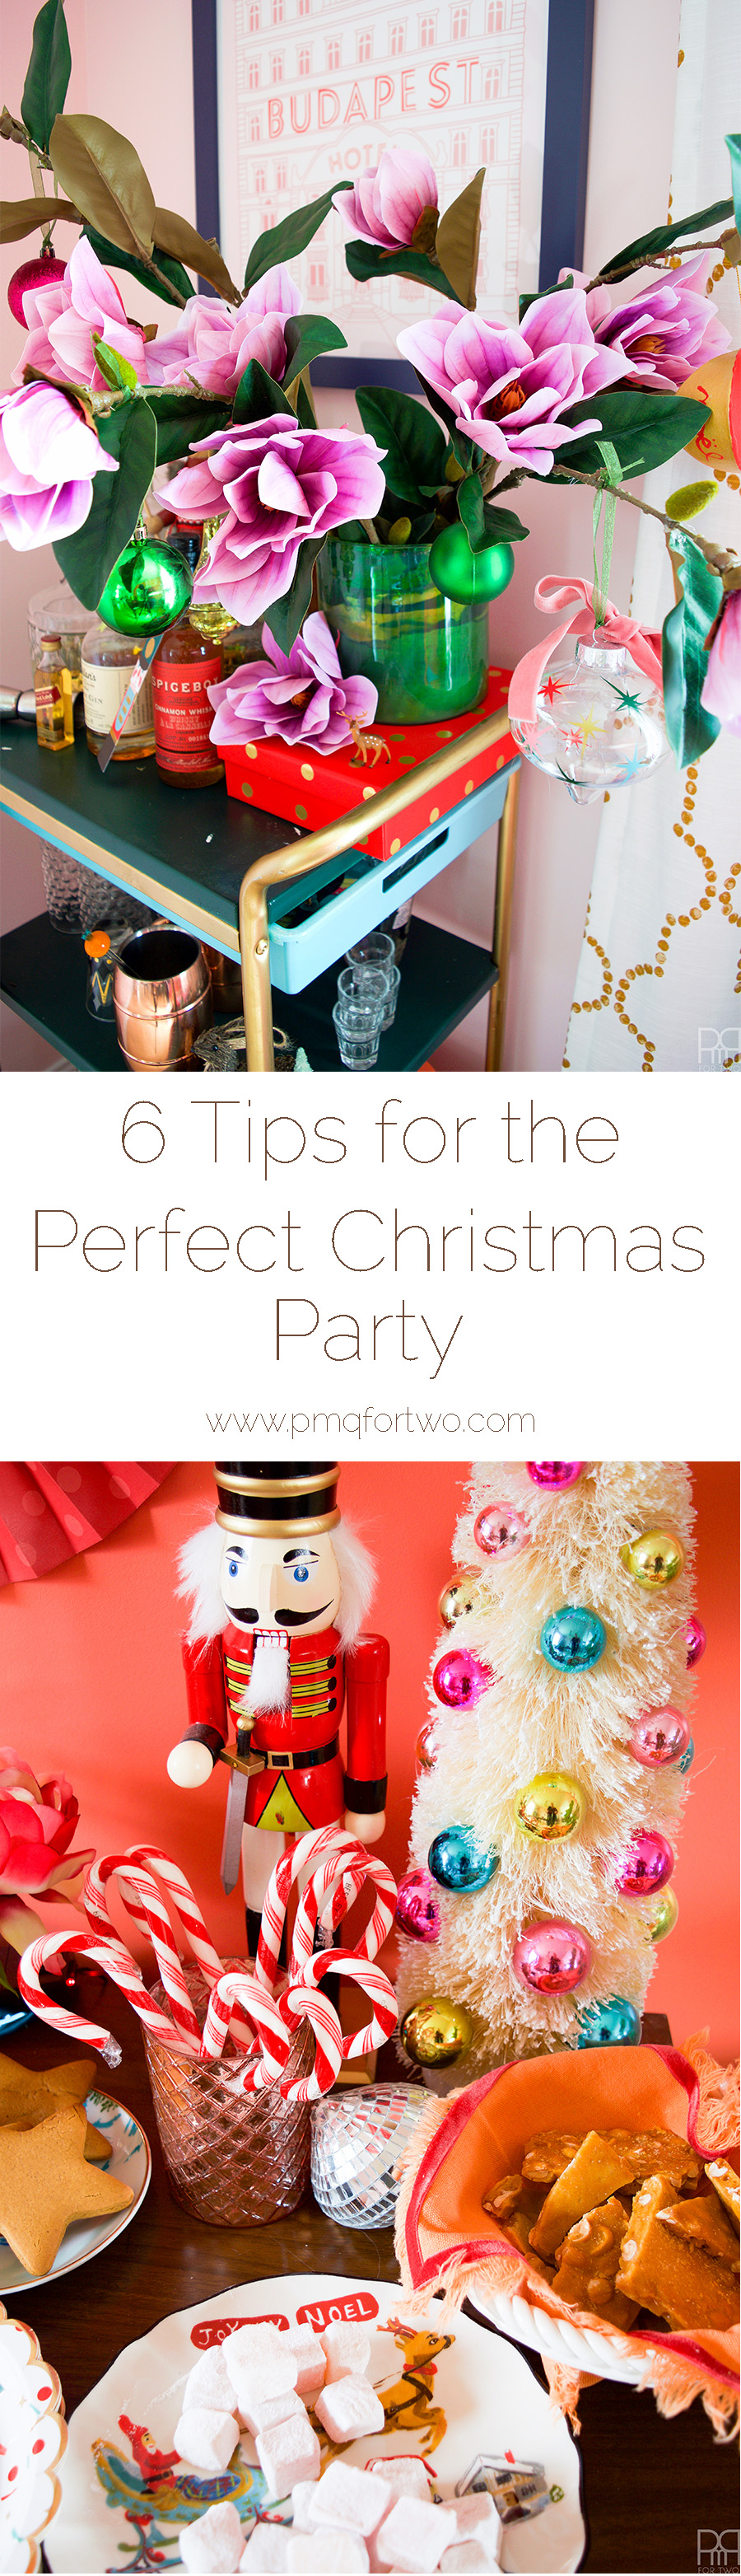 6-tips-for-the-perfect-christmas-party